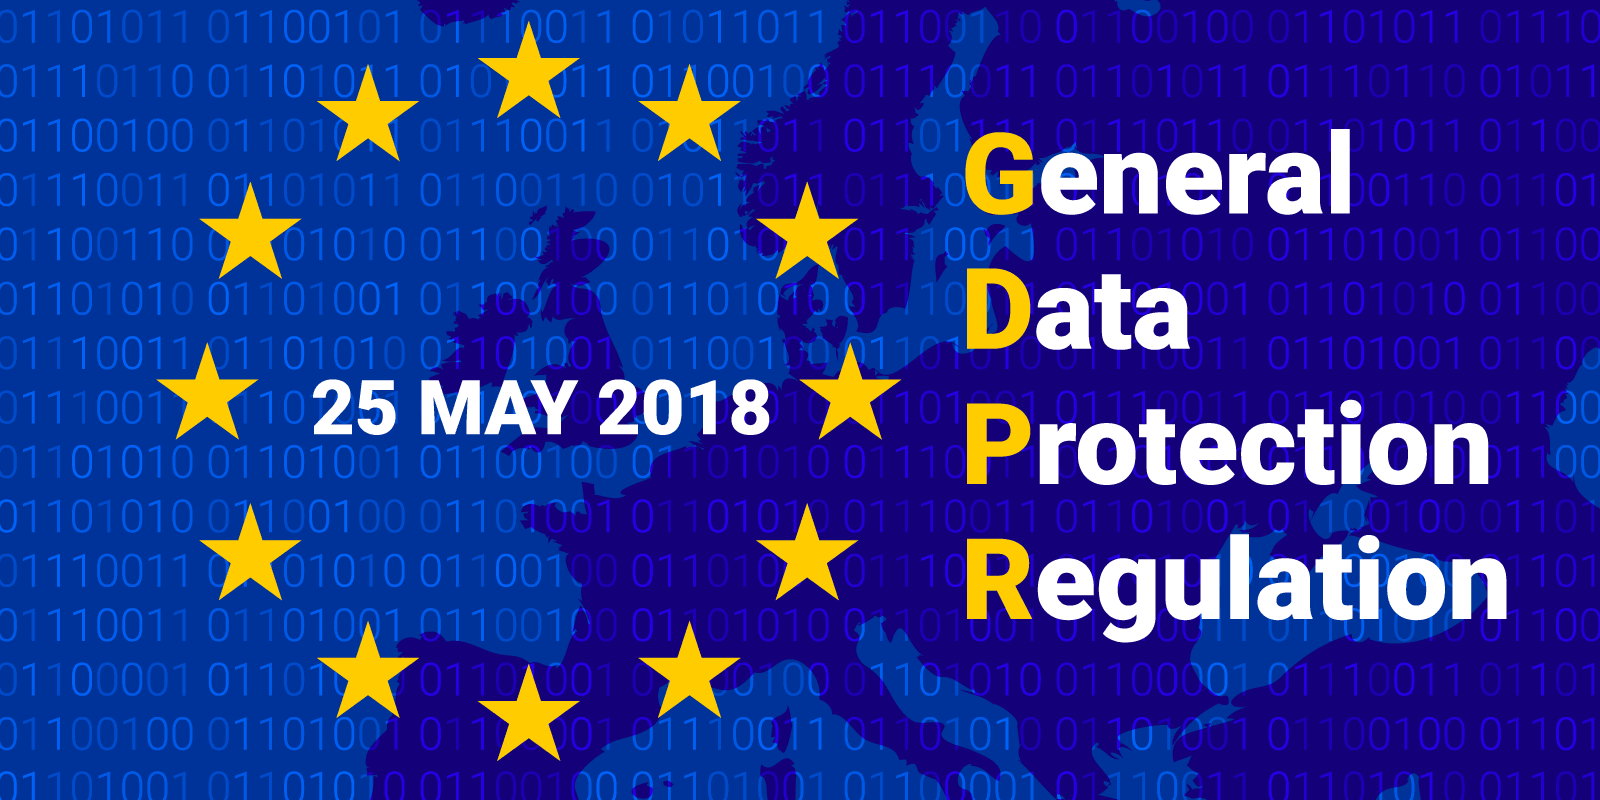 Since 2016, the demand for Data Protection Officers (DPOs) has skyrocketed and risen over 700%, due to the GDPR demands